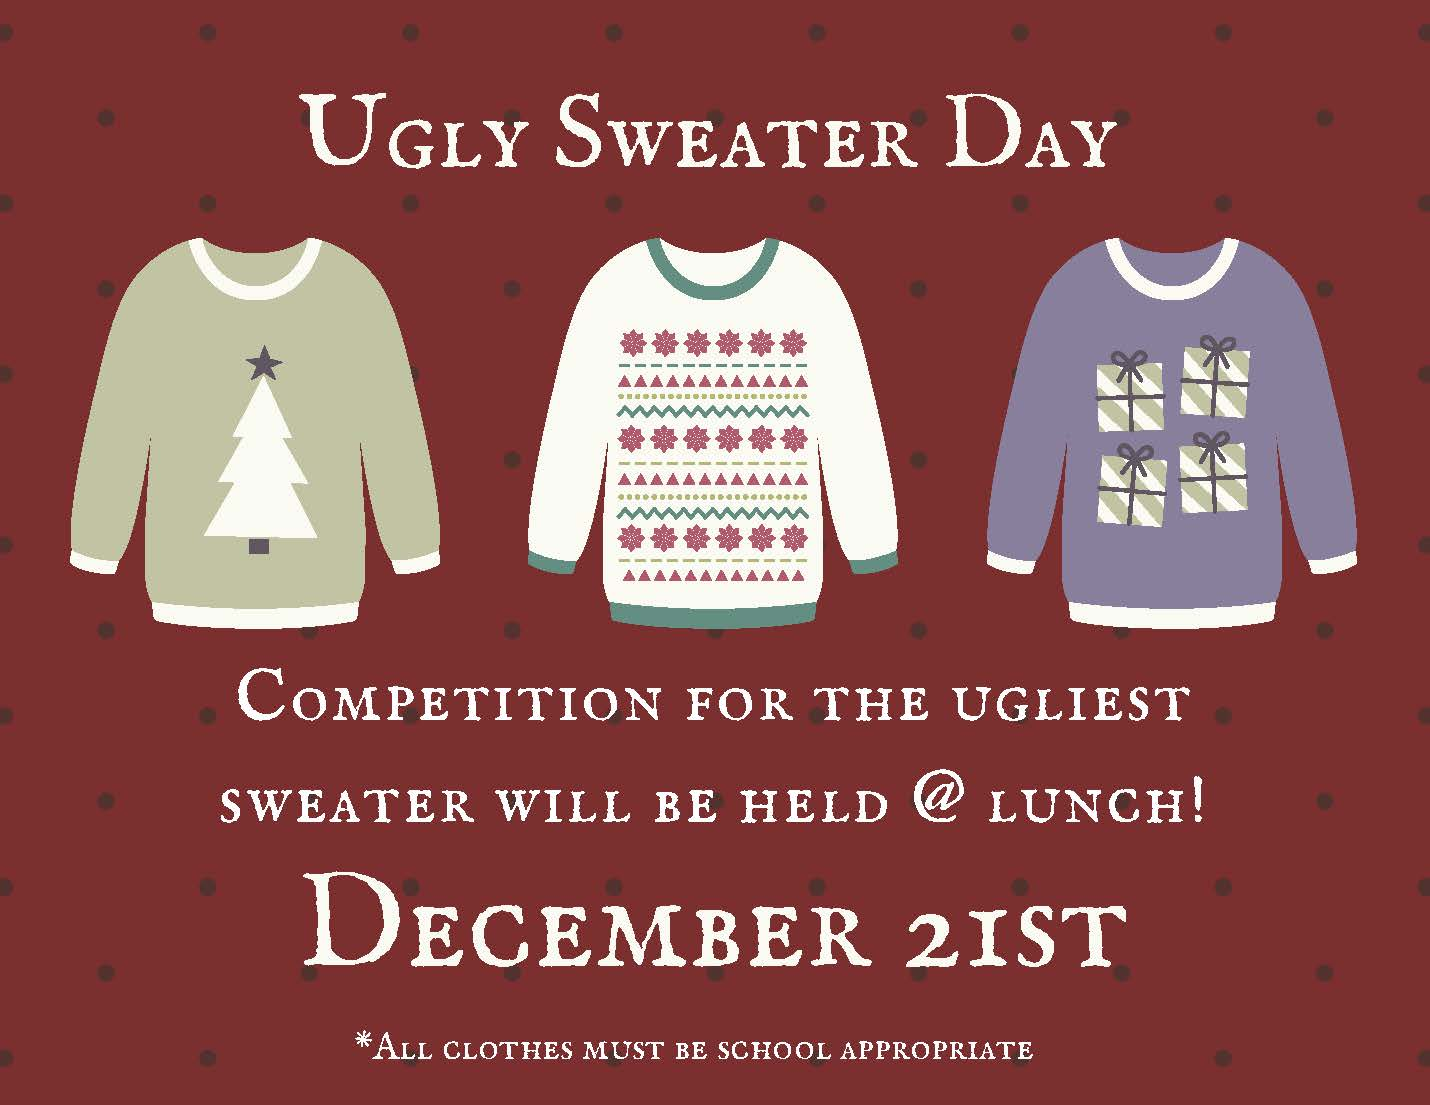 ms-hs-ugly-sweater-day.jpg